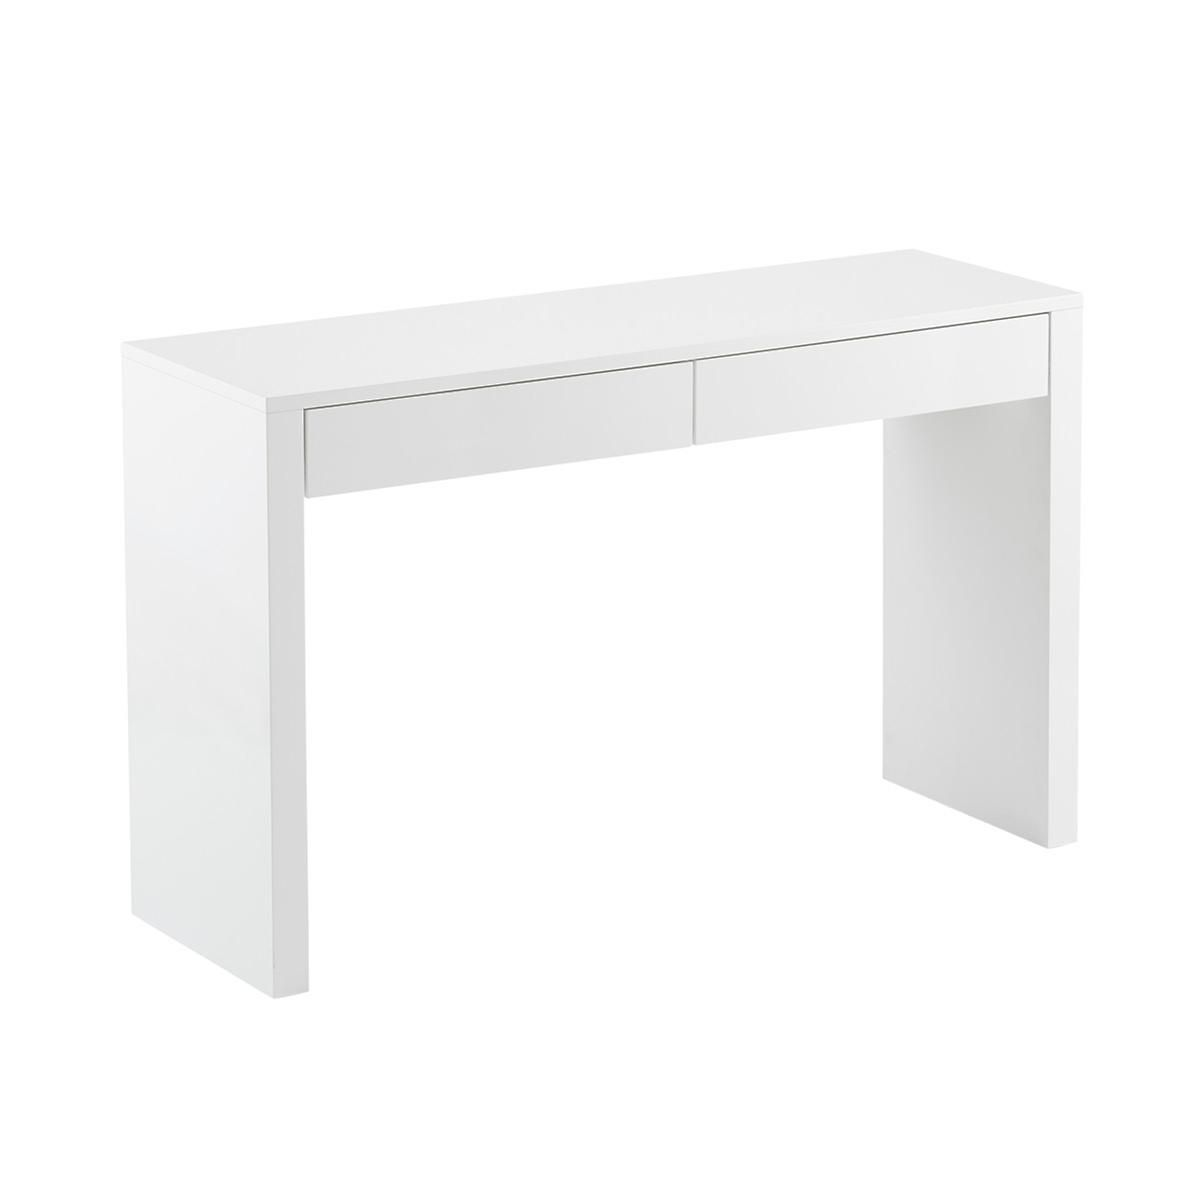 High Gloss Desk The Container Store High Gloss Desk White